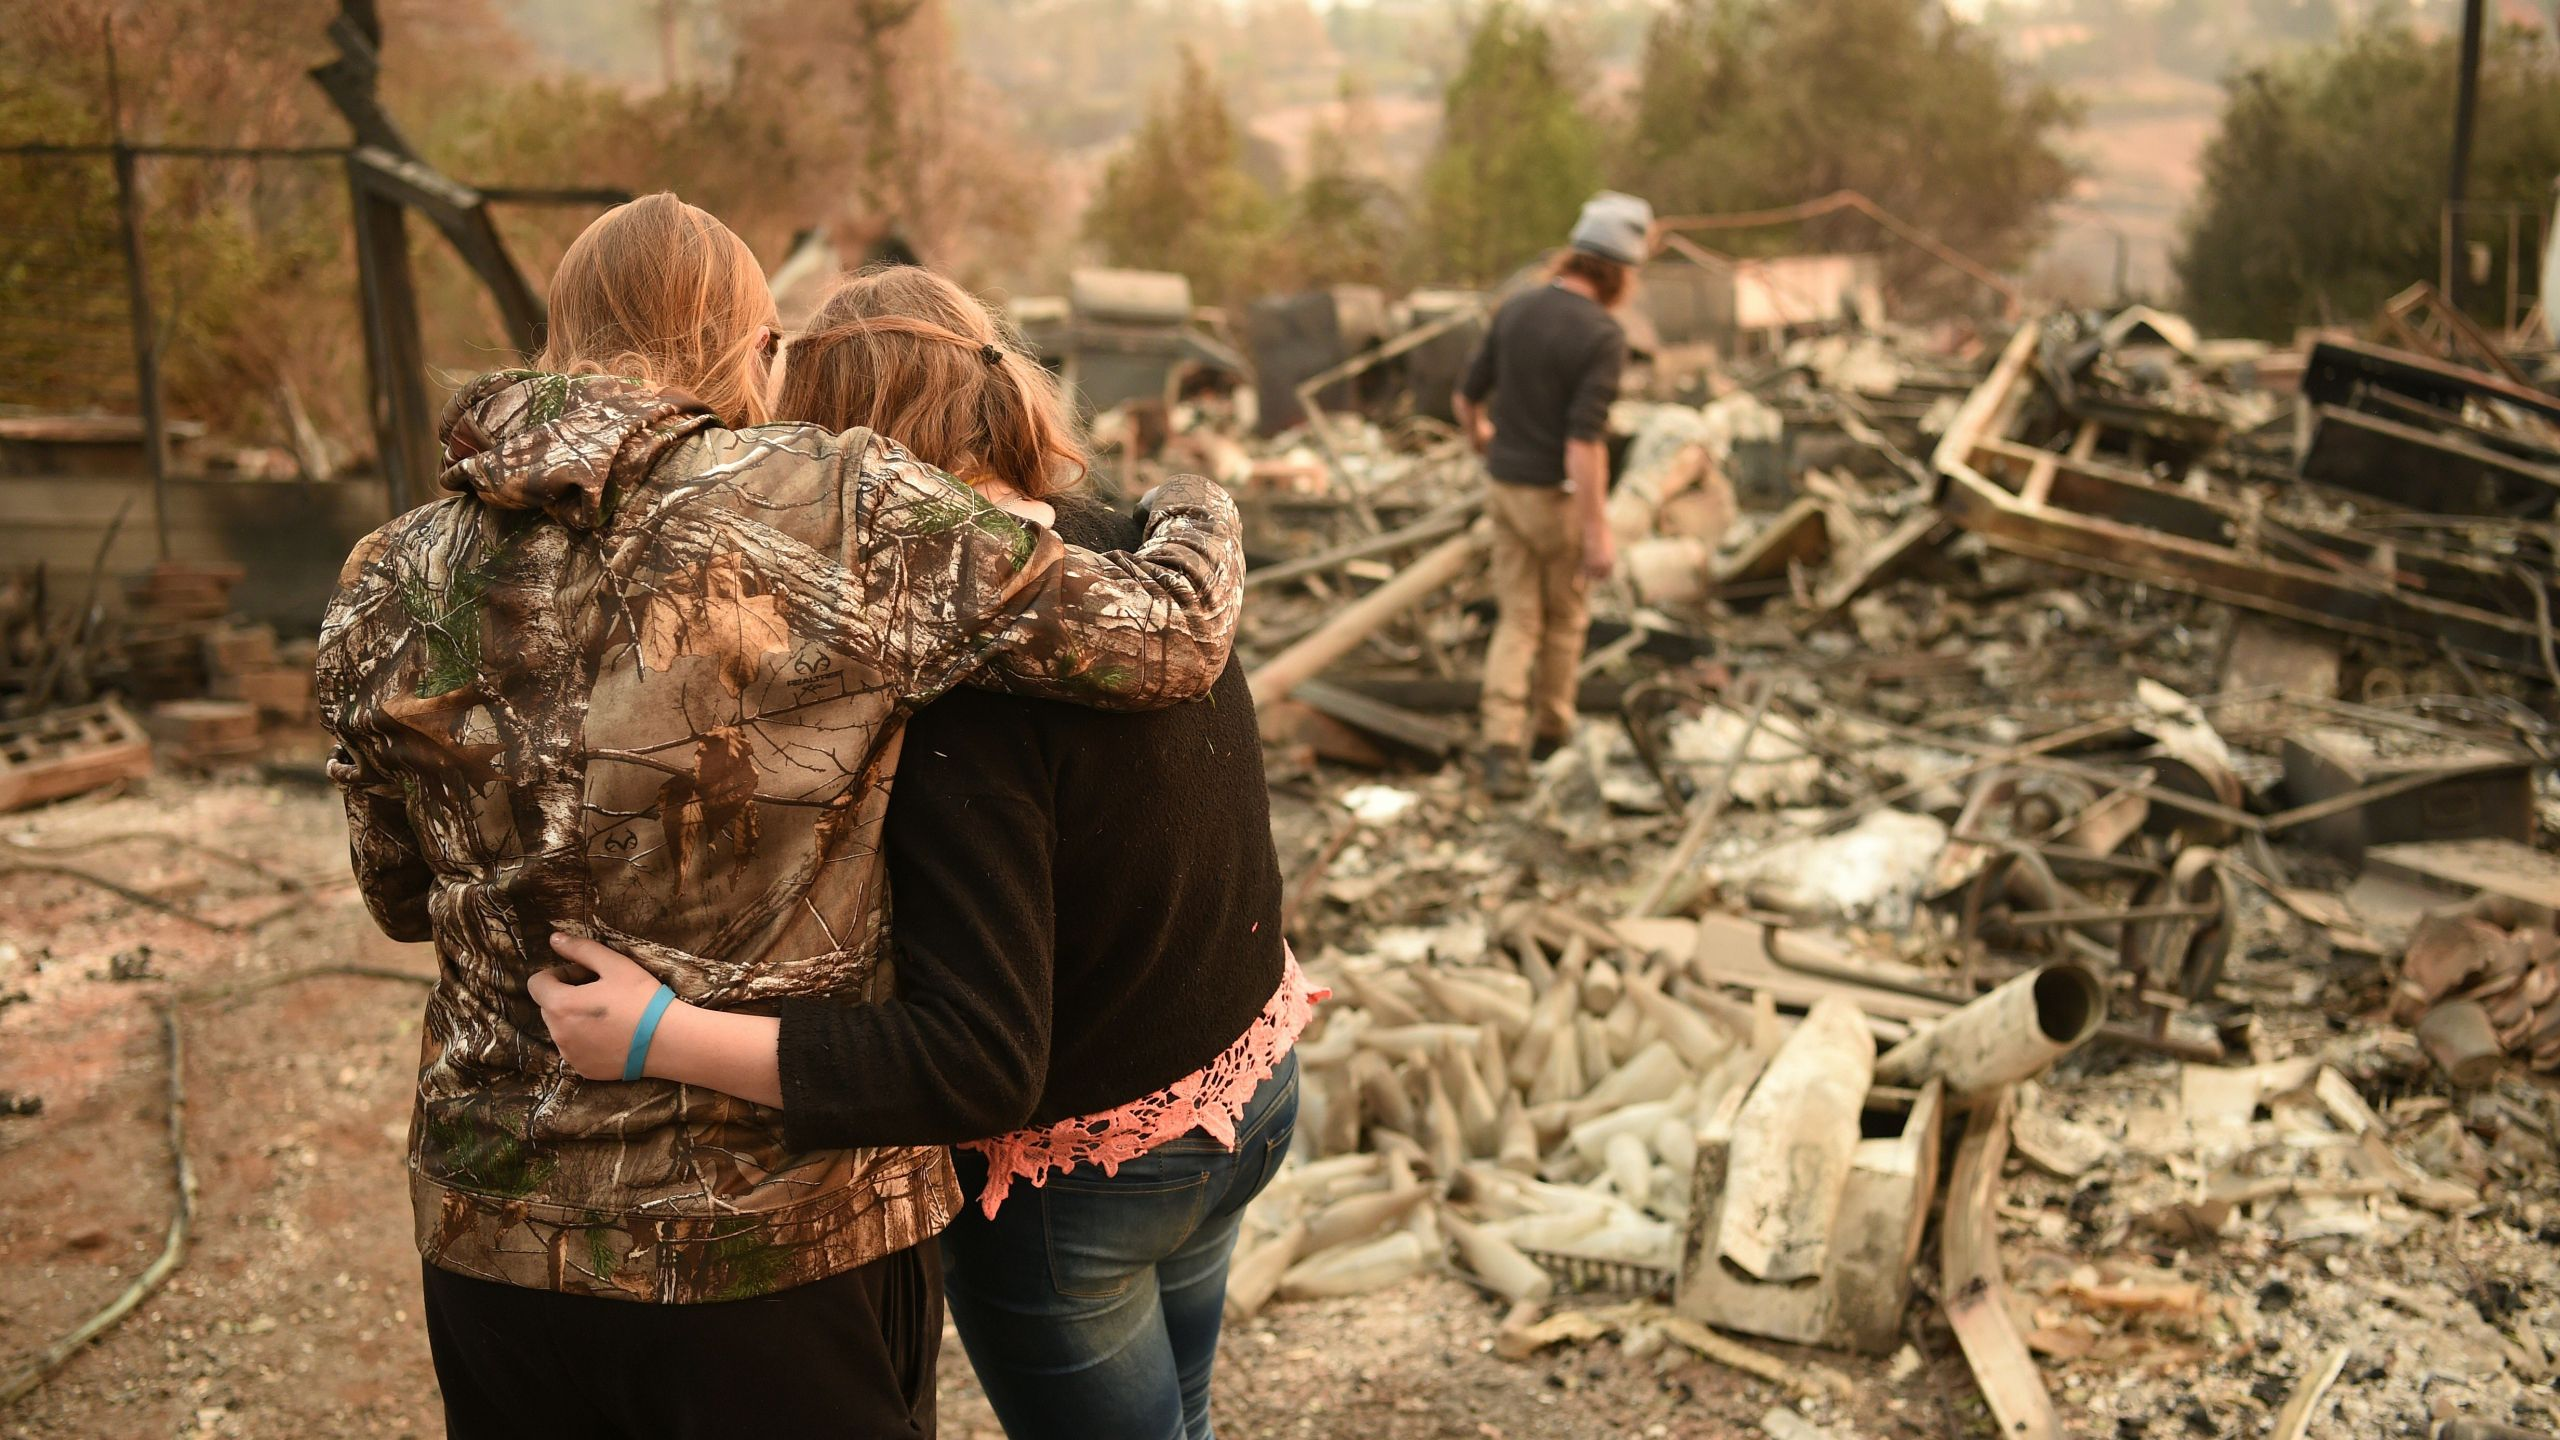 Kimberly Spainhower hugs her daughter Chloe, 13, while her husband, Ryan Spainhower, searches through the ashes of their burned home in Paradise on Nov. 18, 2018. (Credit: Josh Edelson / AFP / Getty Images)